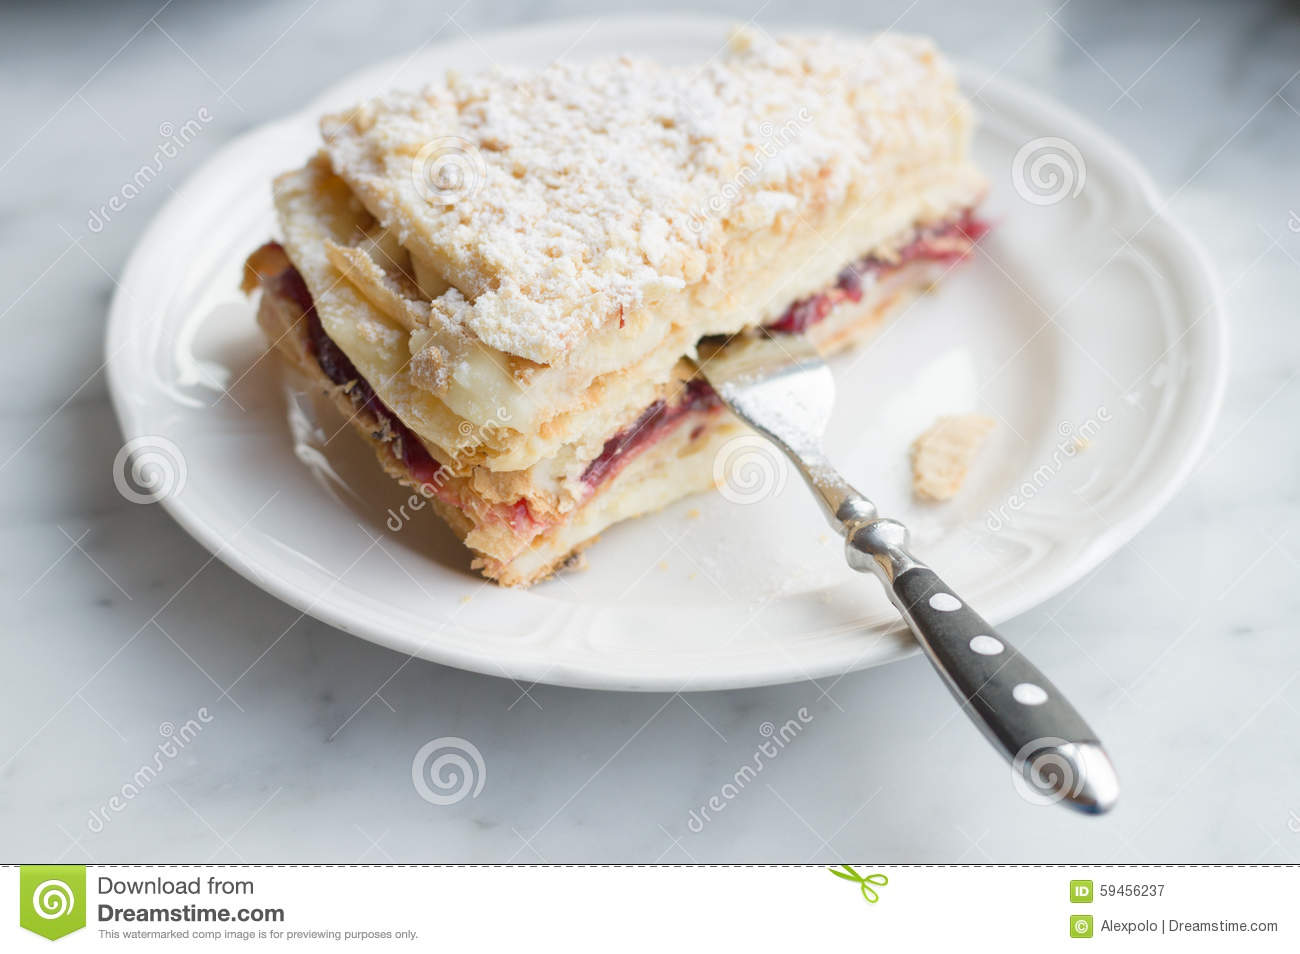 Slice of Mille Feuille cake on Slice